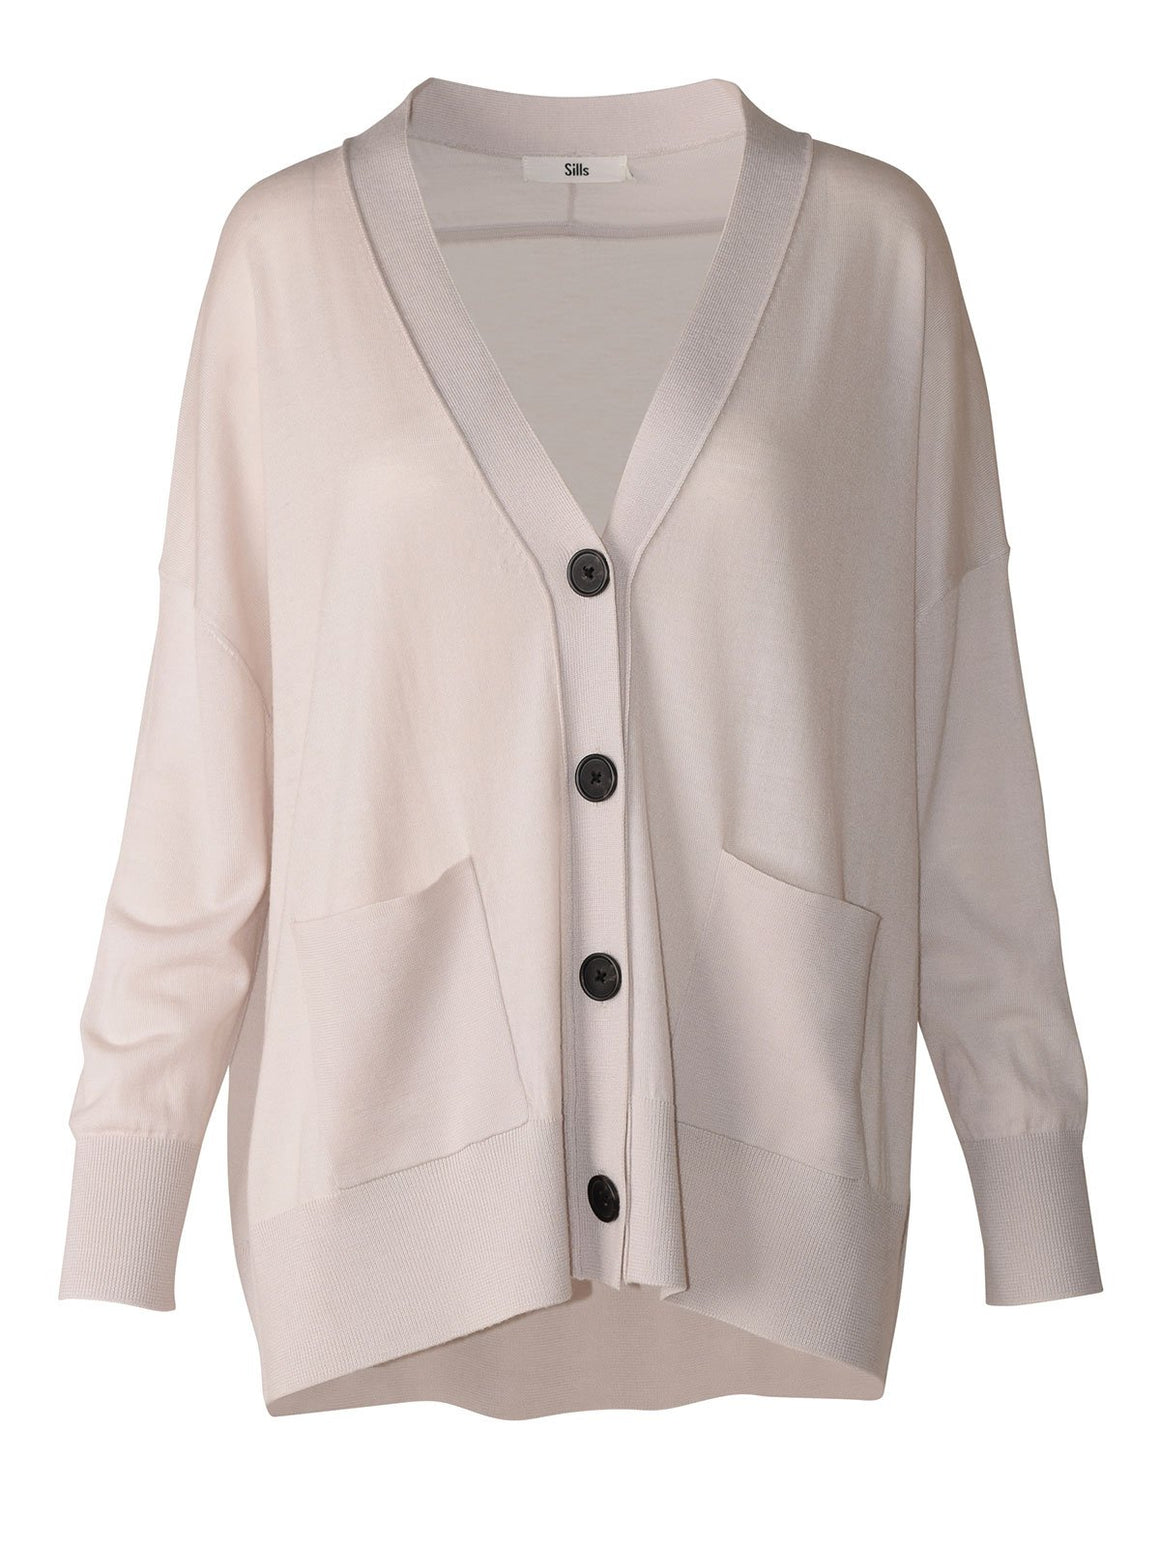 Sills Sofia Long Cardi | Sills in NZ Wallace & Gibbs